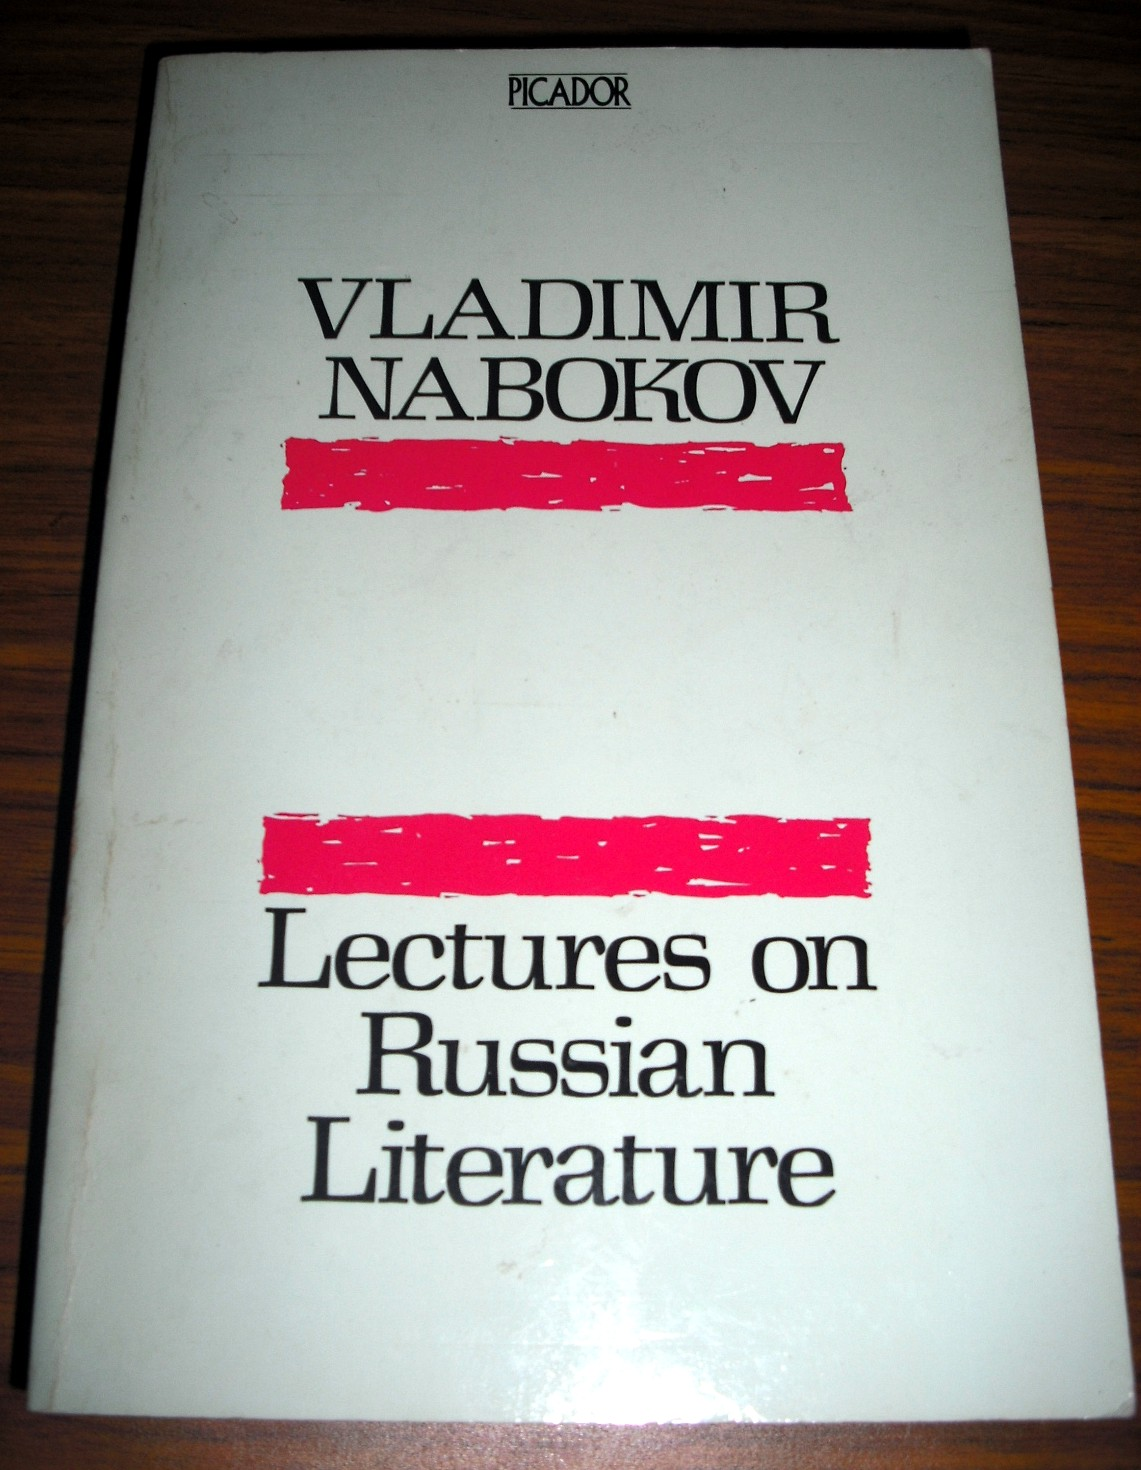 nabokov lolita essay Free vladimir nabokov papers, essays, and research papers.